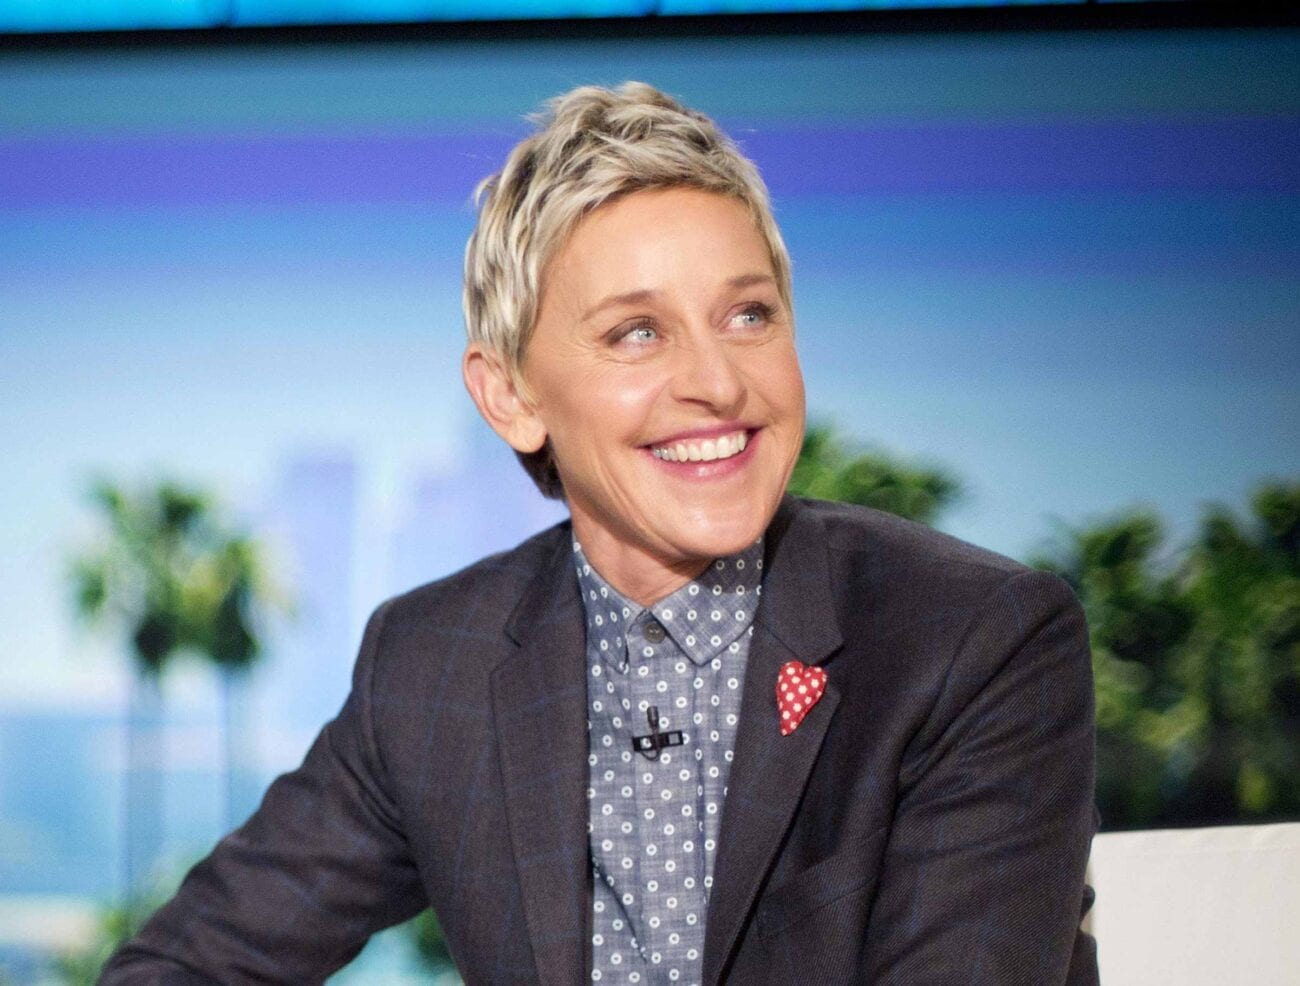 Ellen DeGeneres's show income makes up a hefty chunk of her net worth. Here's everything you need to know about her high net worth.